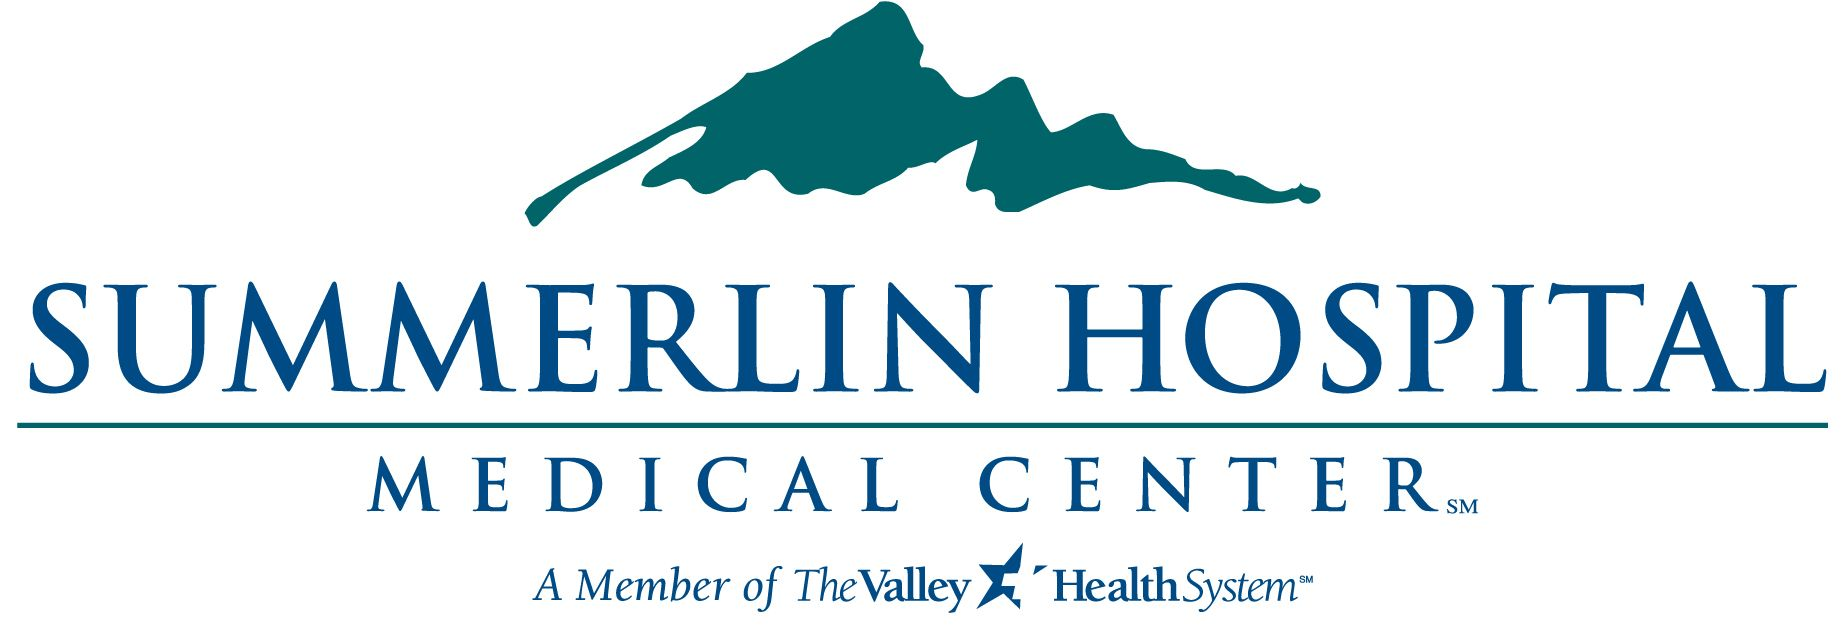 Summerlin Hospital Medical Center | Infographic